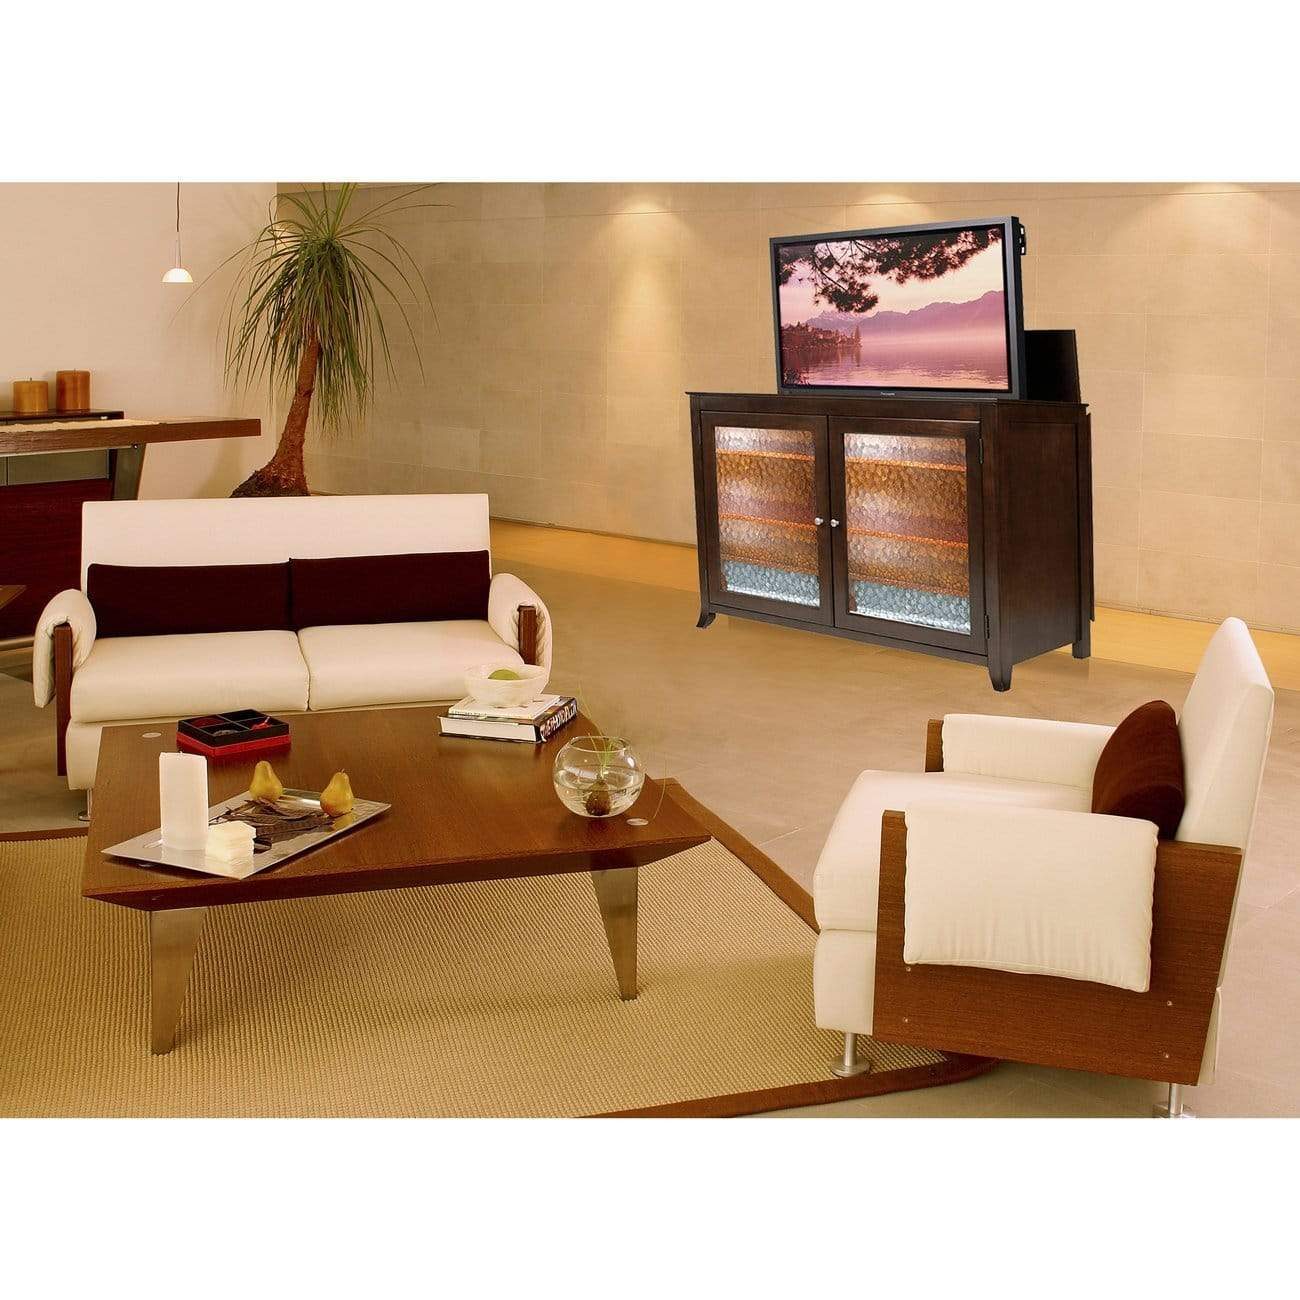 Order now touchstone 70065 carmel tv lift cabinet espresso up to 60 inch tvs diagonal 55 in wide contemporary style motorized tv cabinet pop up tv cabinet with memory feature ir rf 12v trigger